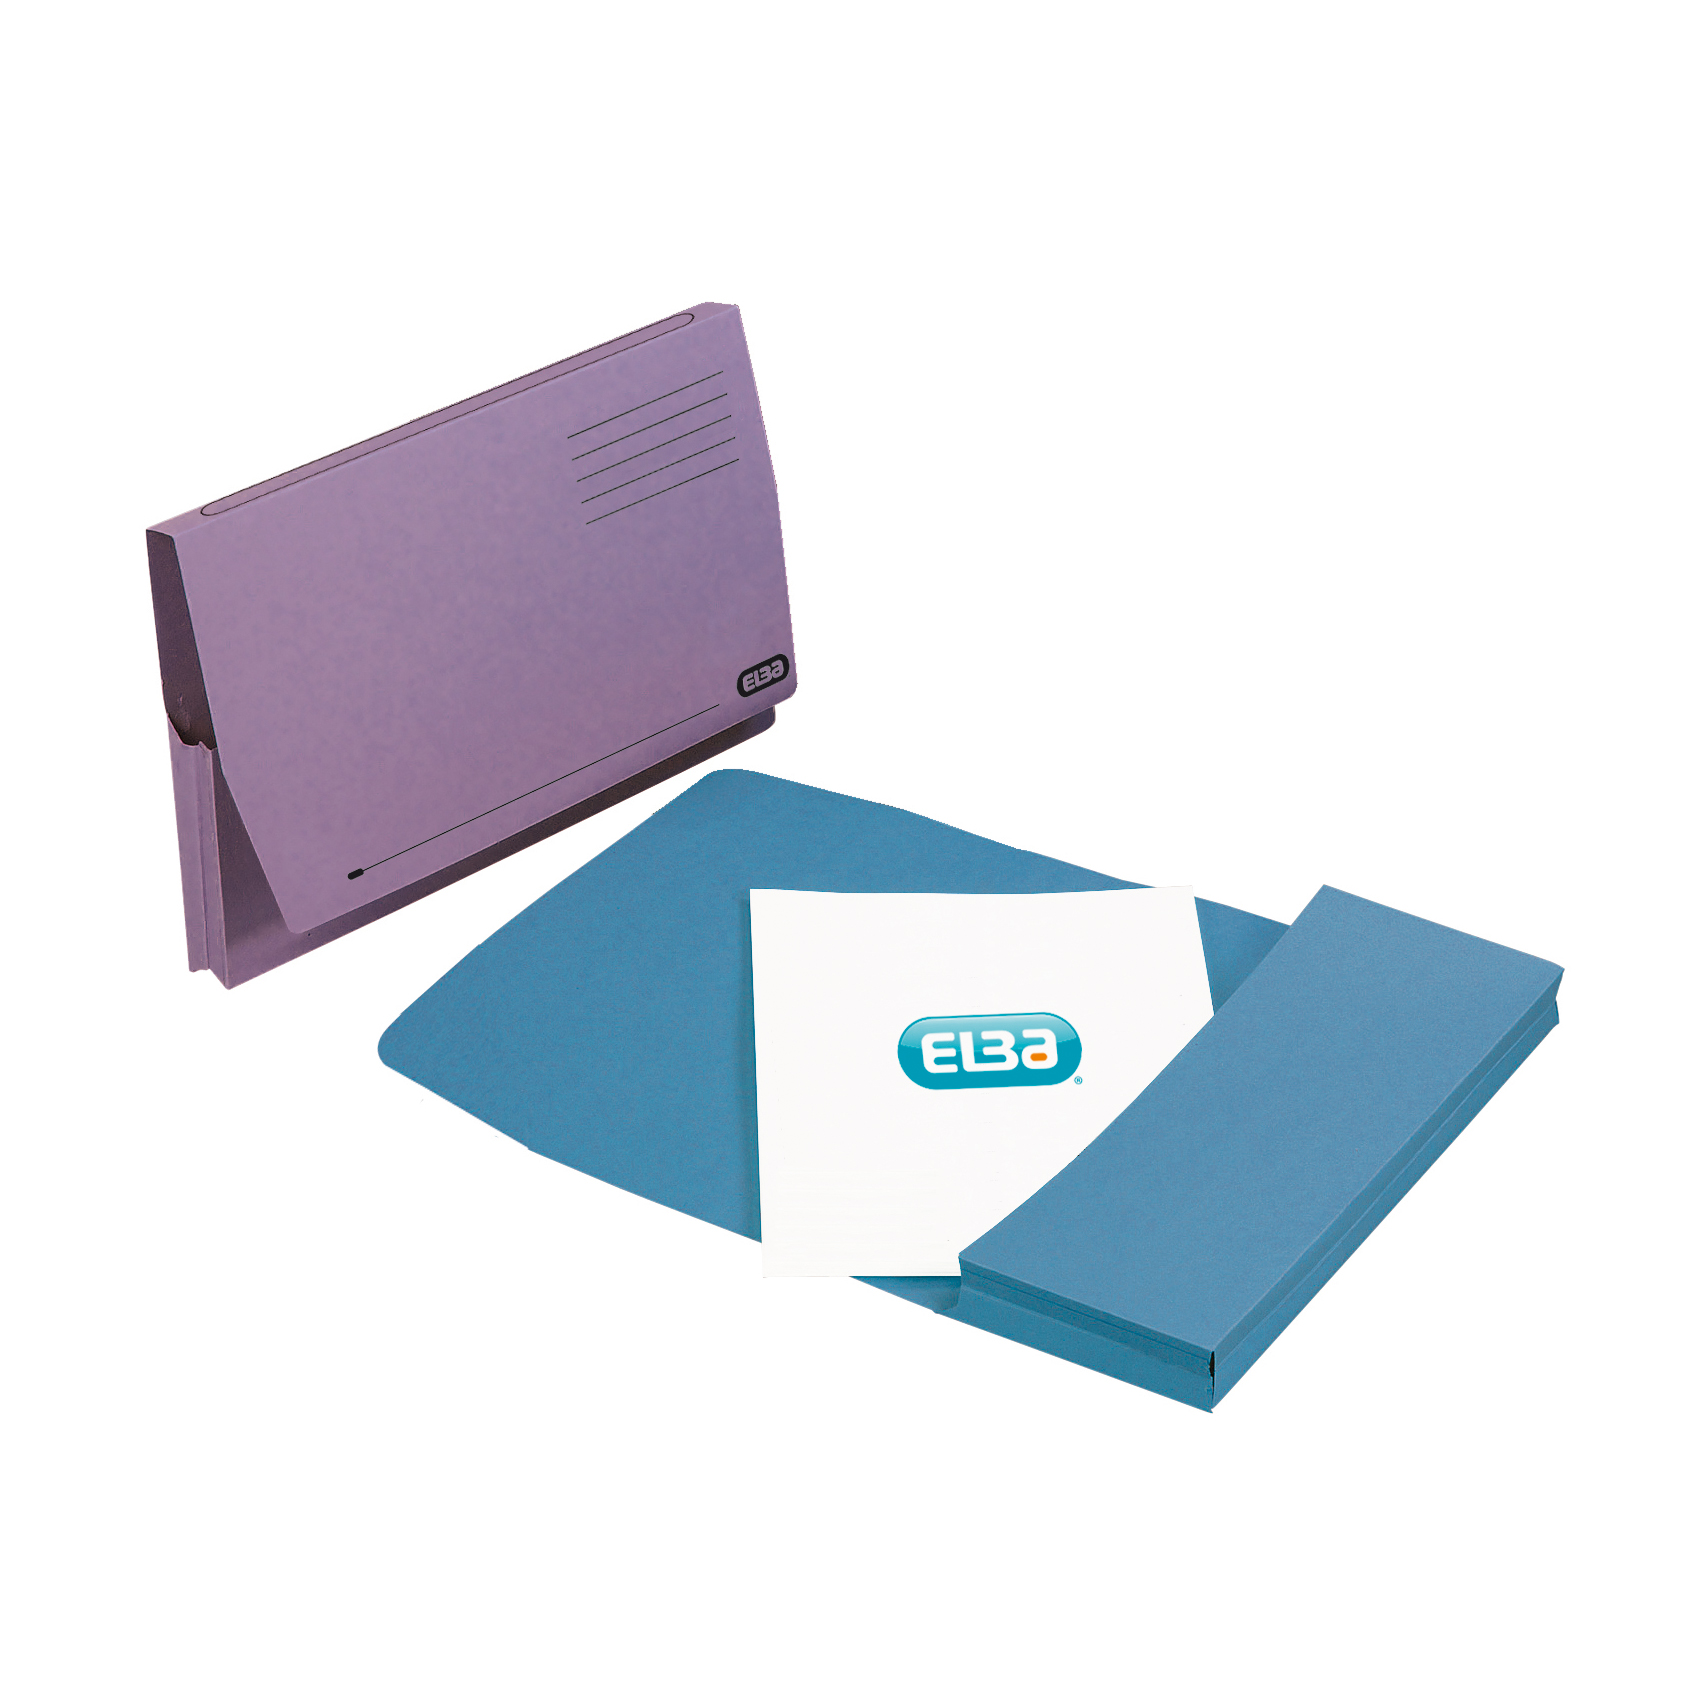 Elba Document Wallet Full Flap 285gsm Capacity 32mm Foolscap Mauve Ref 100090253 Pack 50